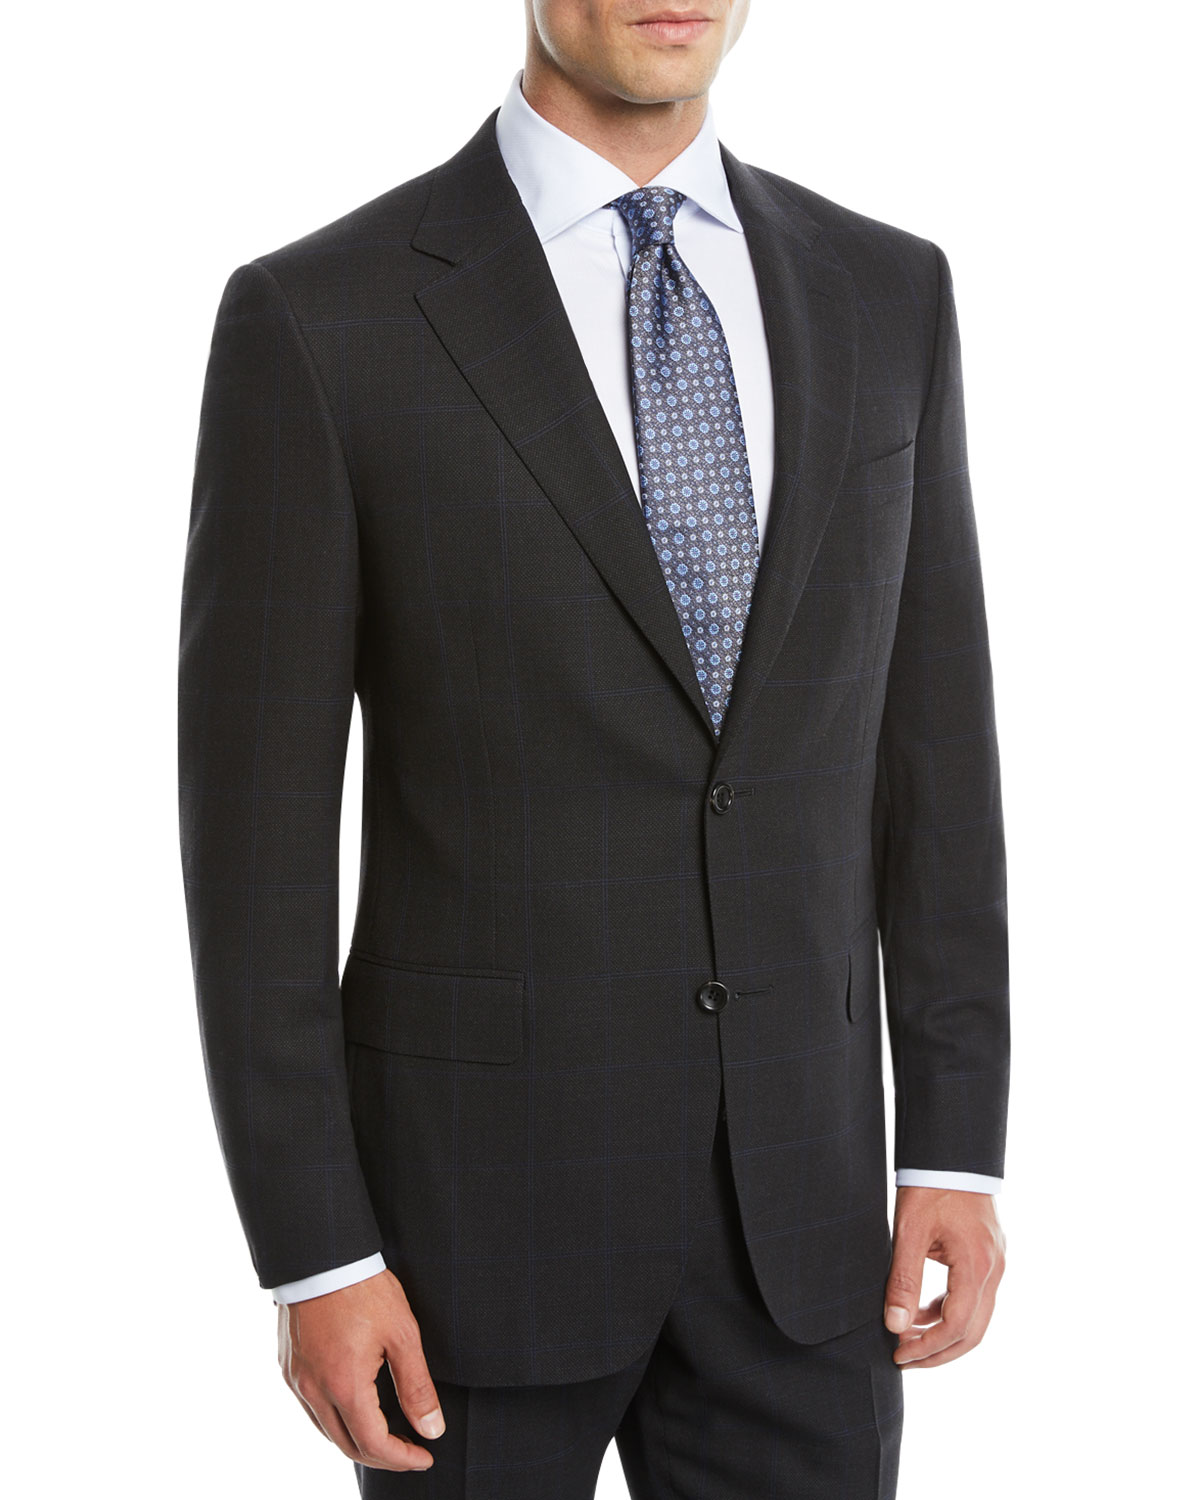 Men's Impeccabile Nailhead Windowpane Two-Piece Wool Suit